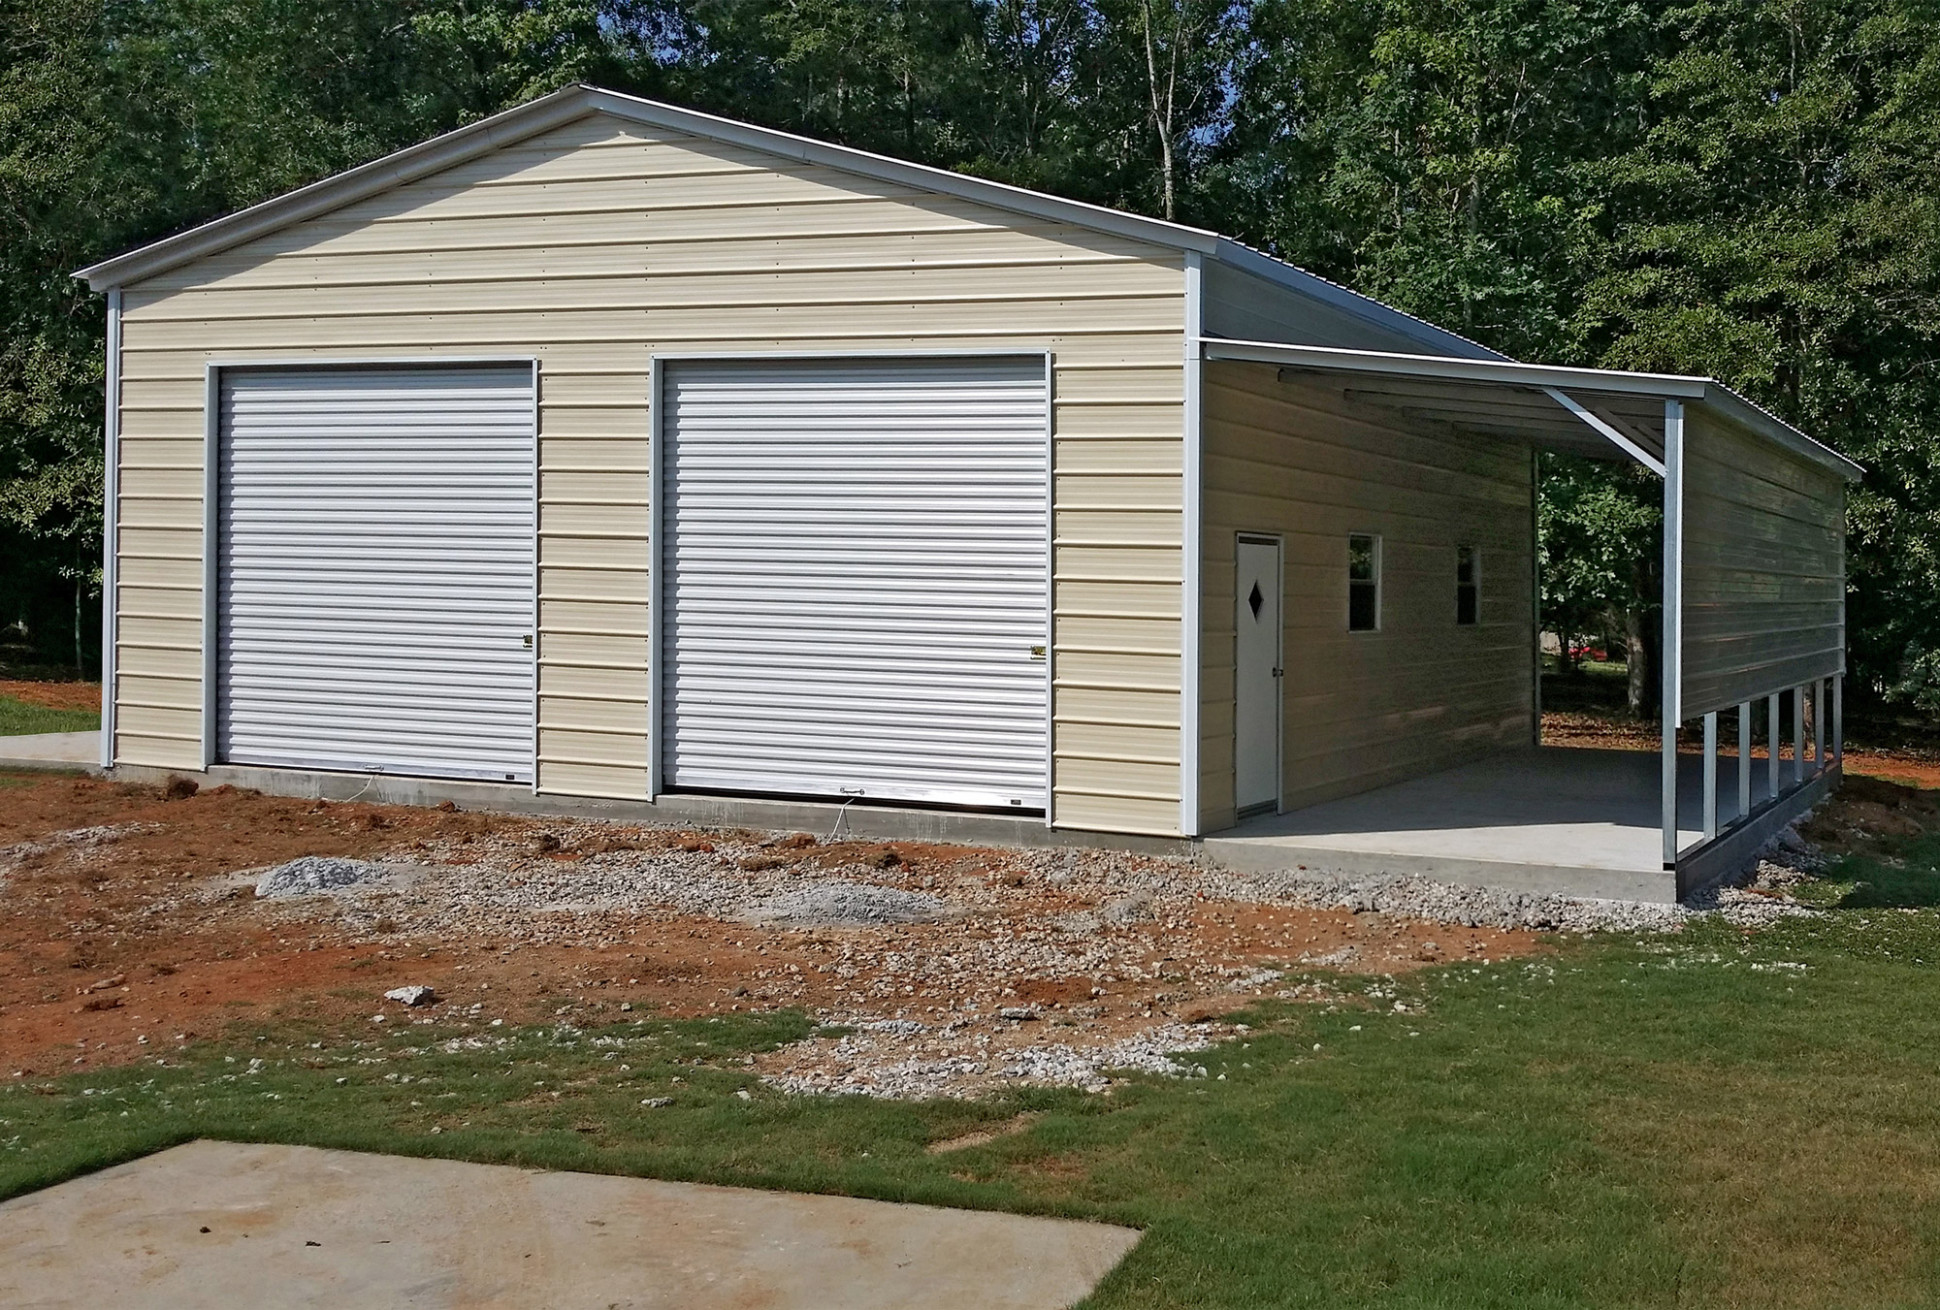 Metal Garages & Carports protect your car from sun, rain ...